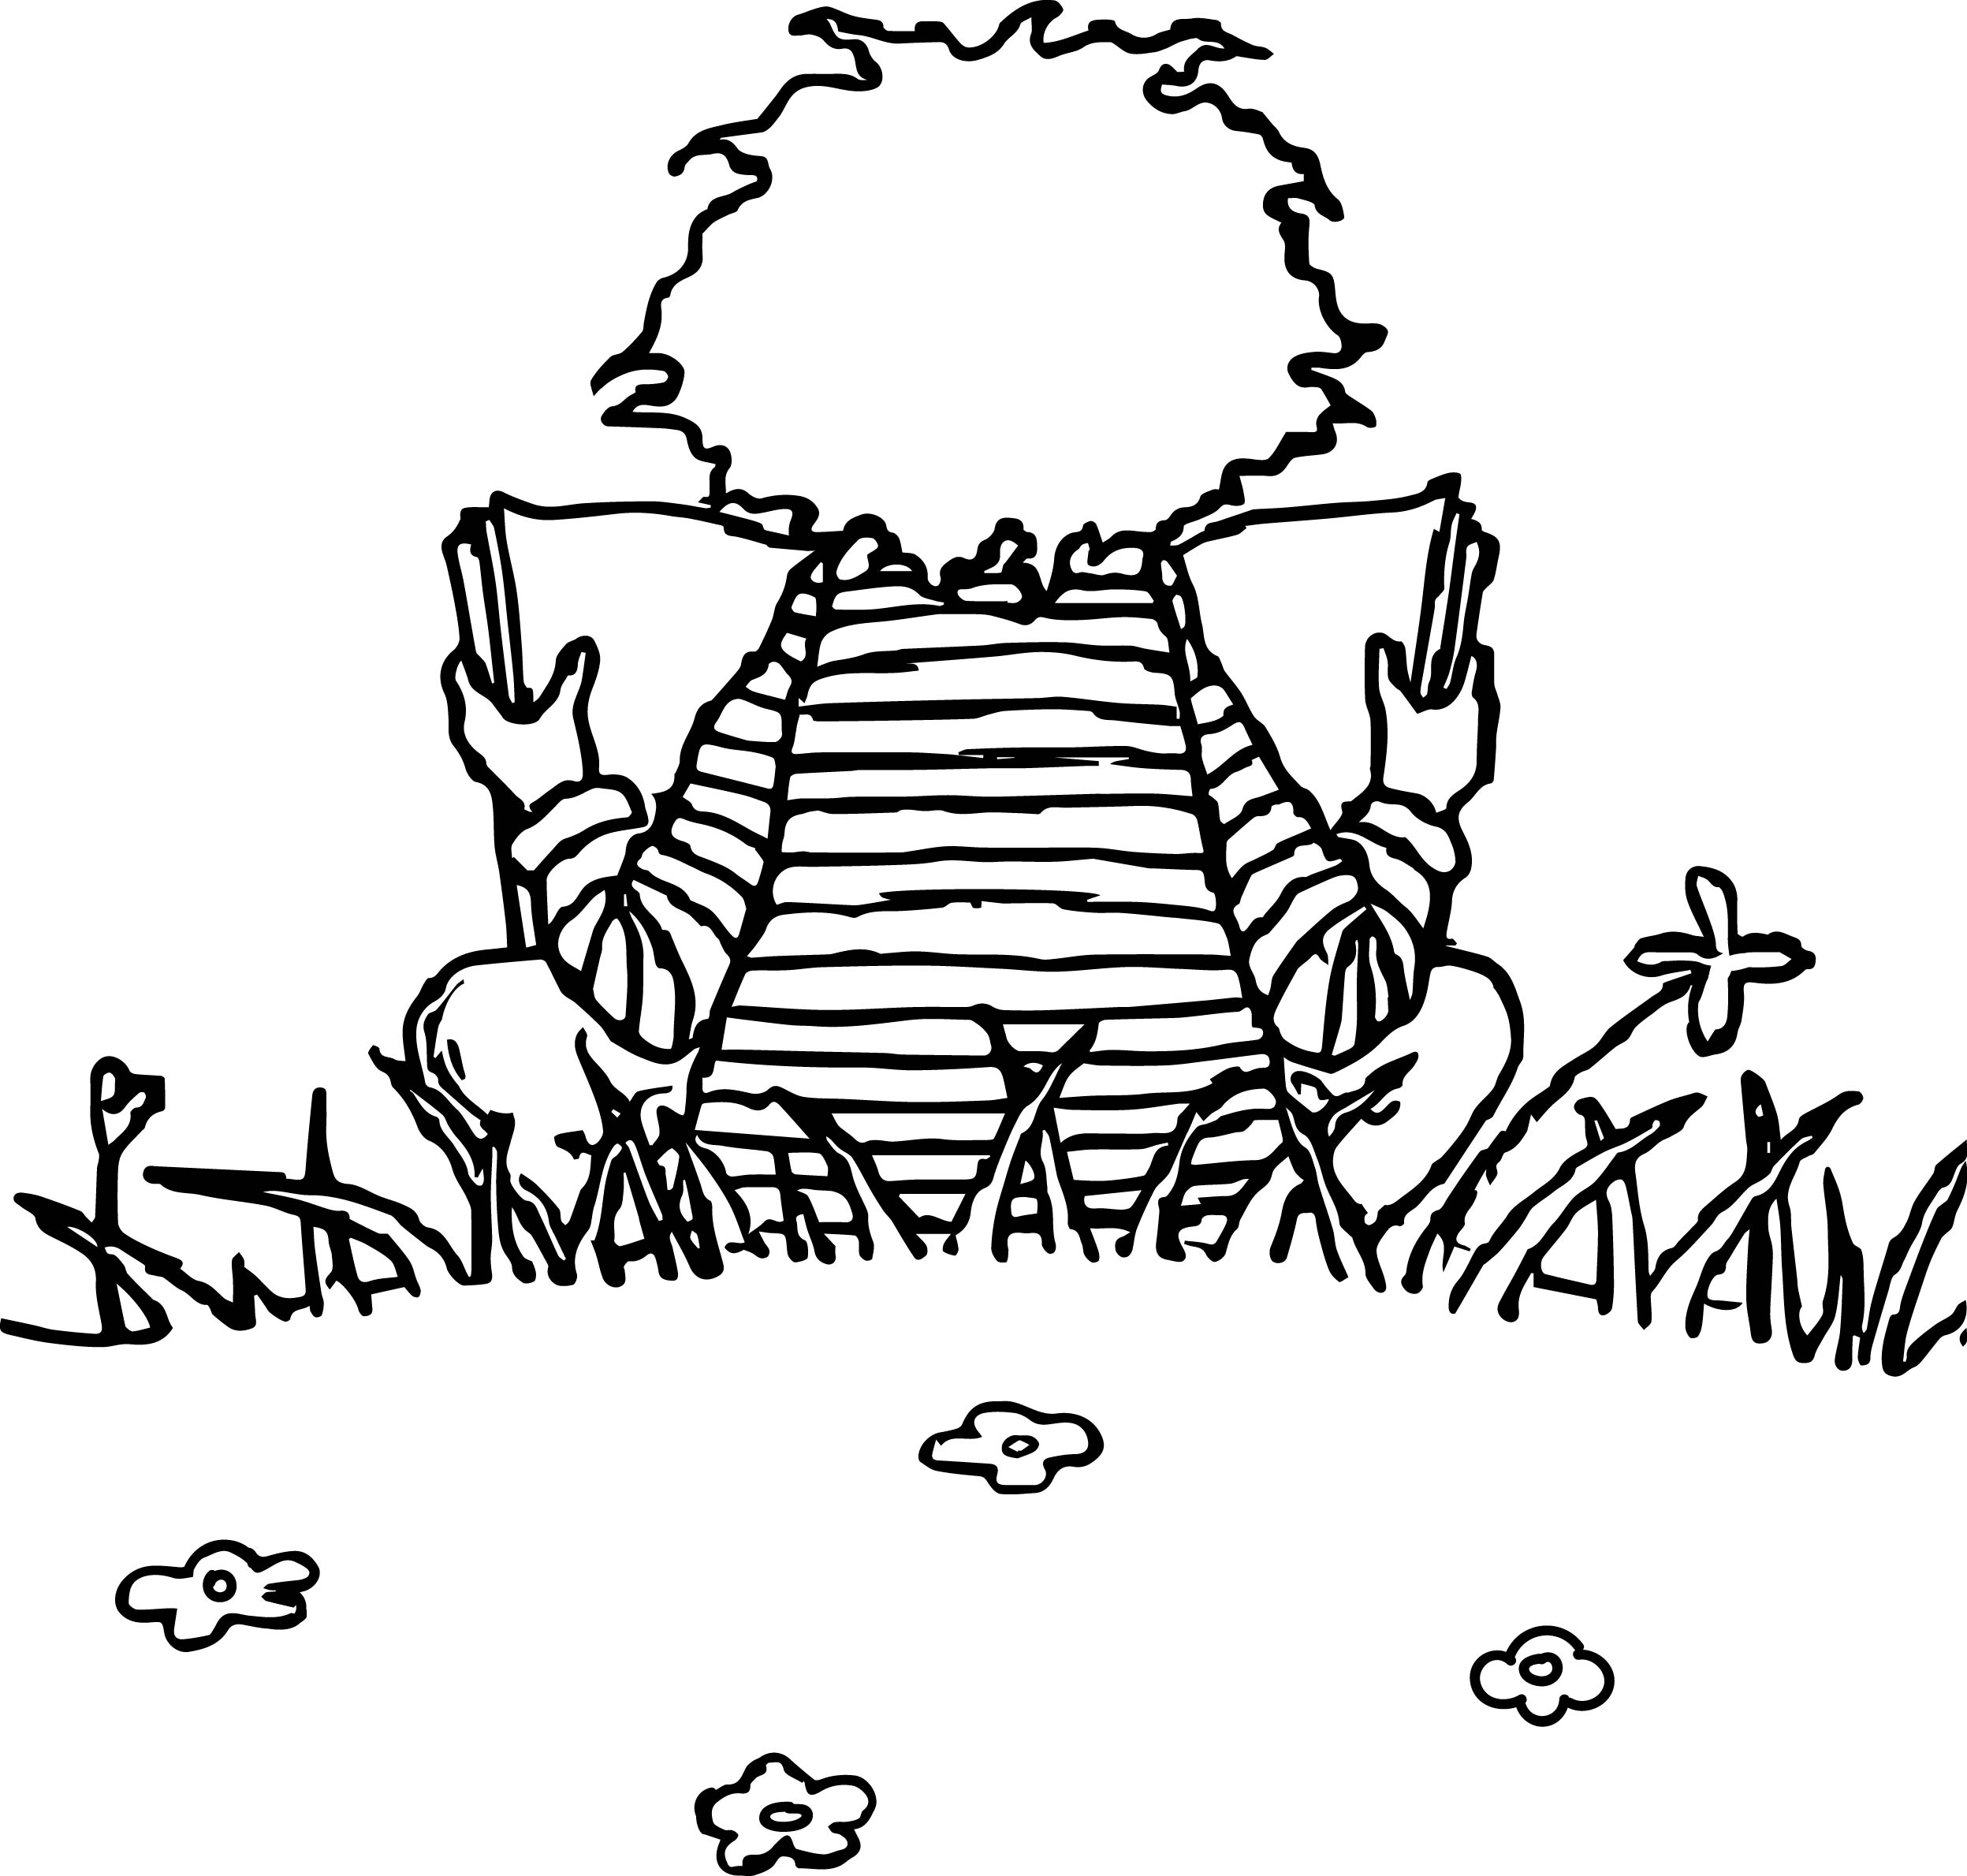 coloring pages about reading - reading kid activity coloring page